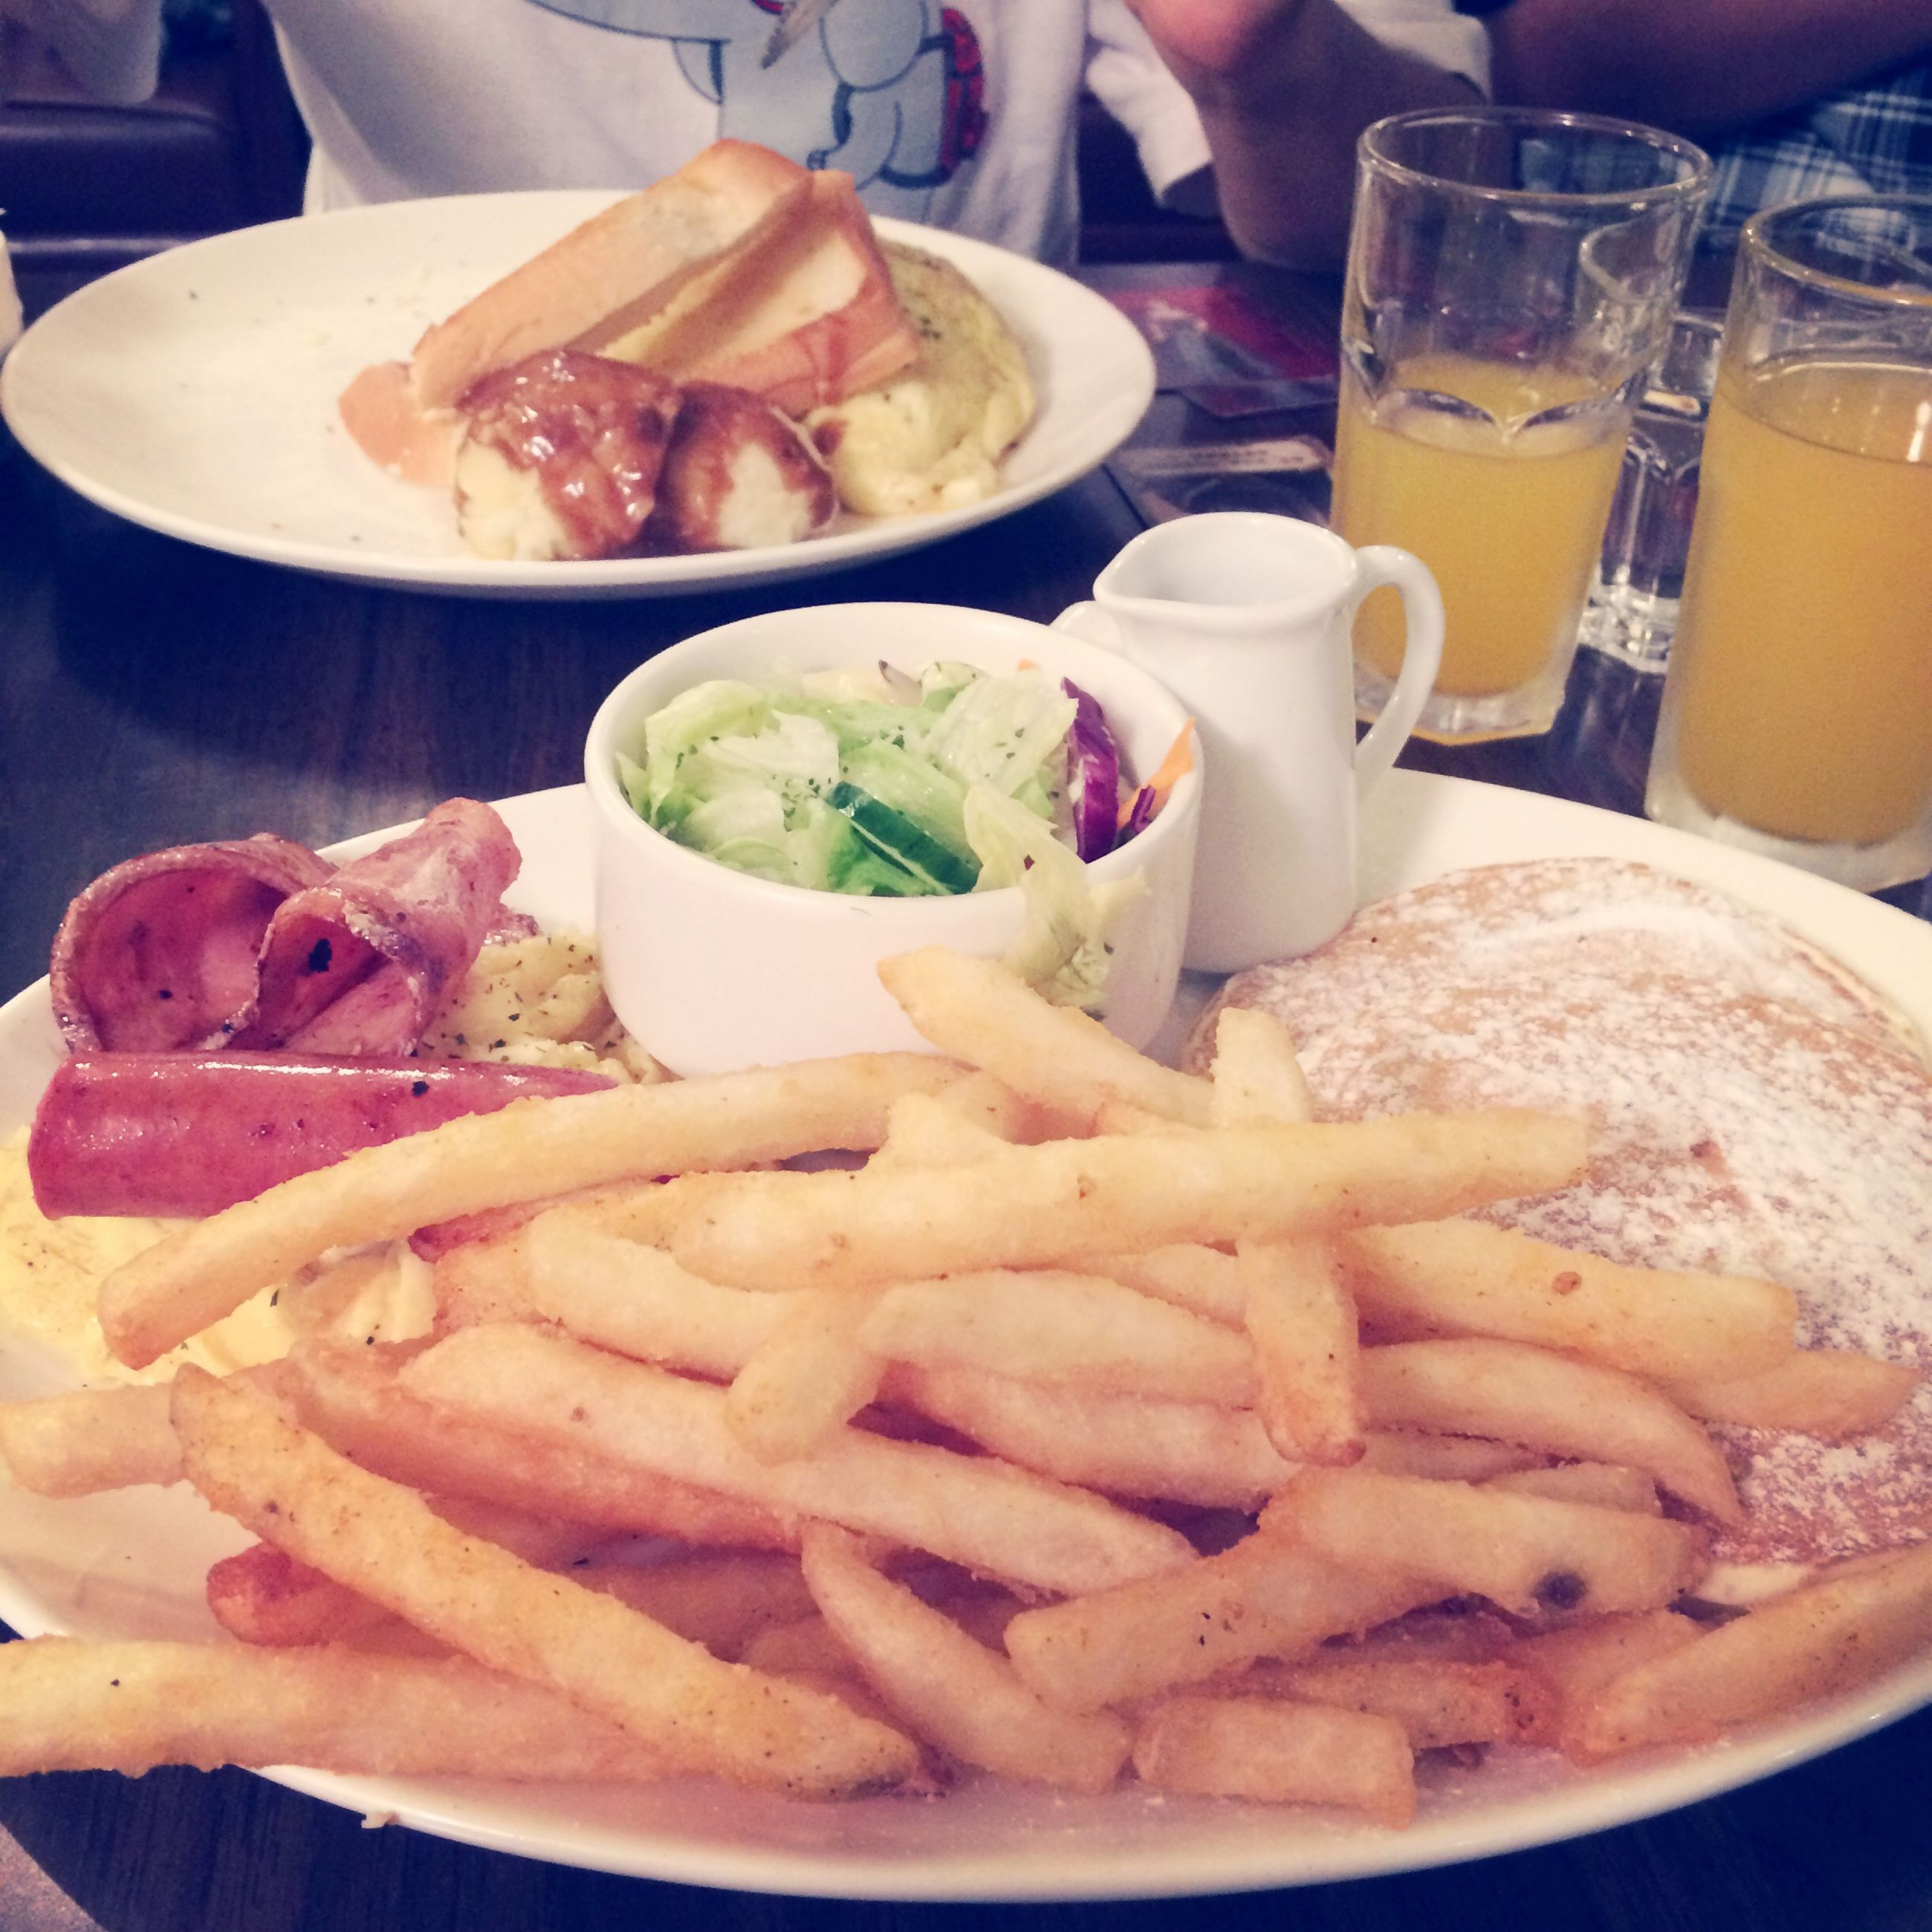 food and drink, food, freshness, ready-to-eat, indoors, plate, unhealthy eating, table, indulgence, serving size, french fries, bread, still life, close-up, breakfast, meal, fast food, snack, drink, slice